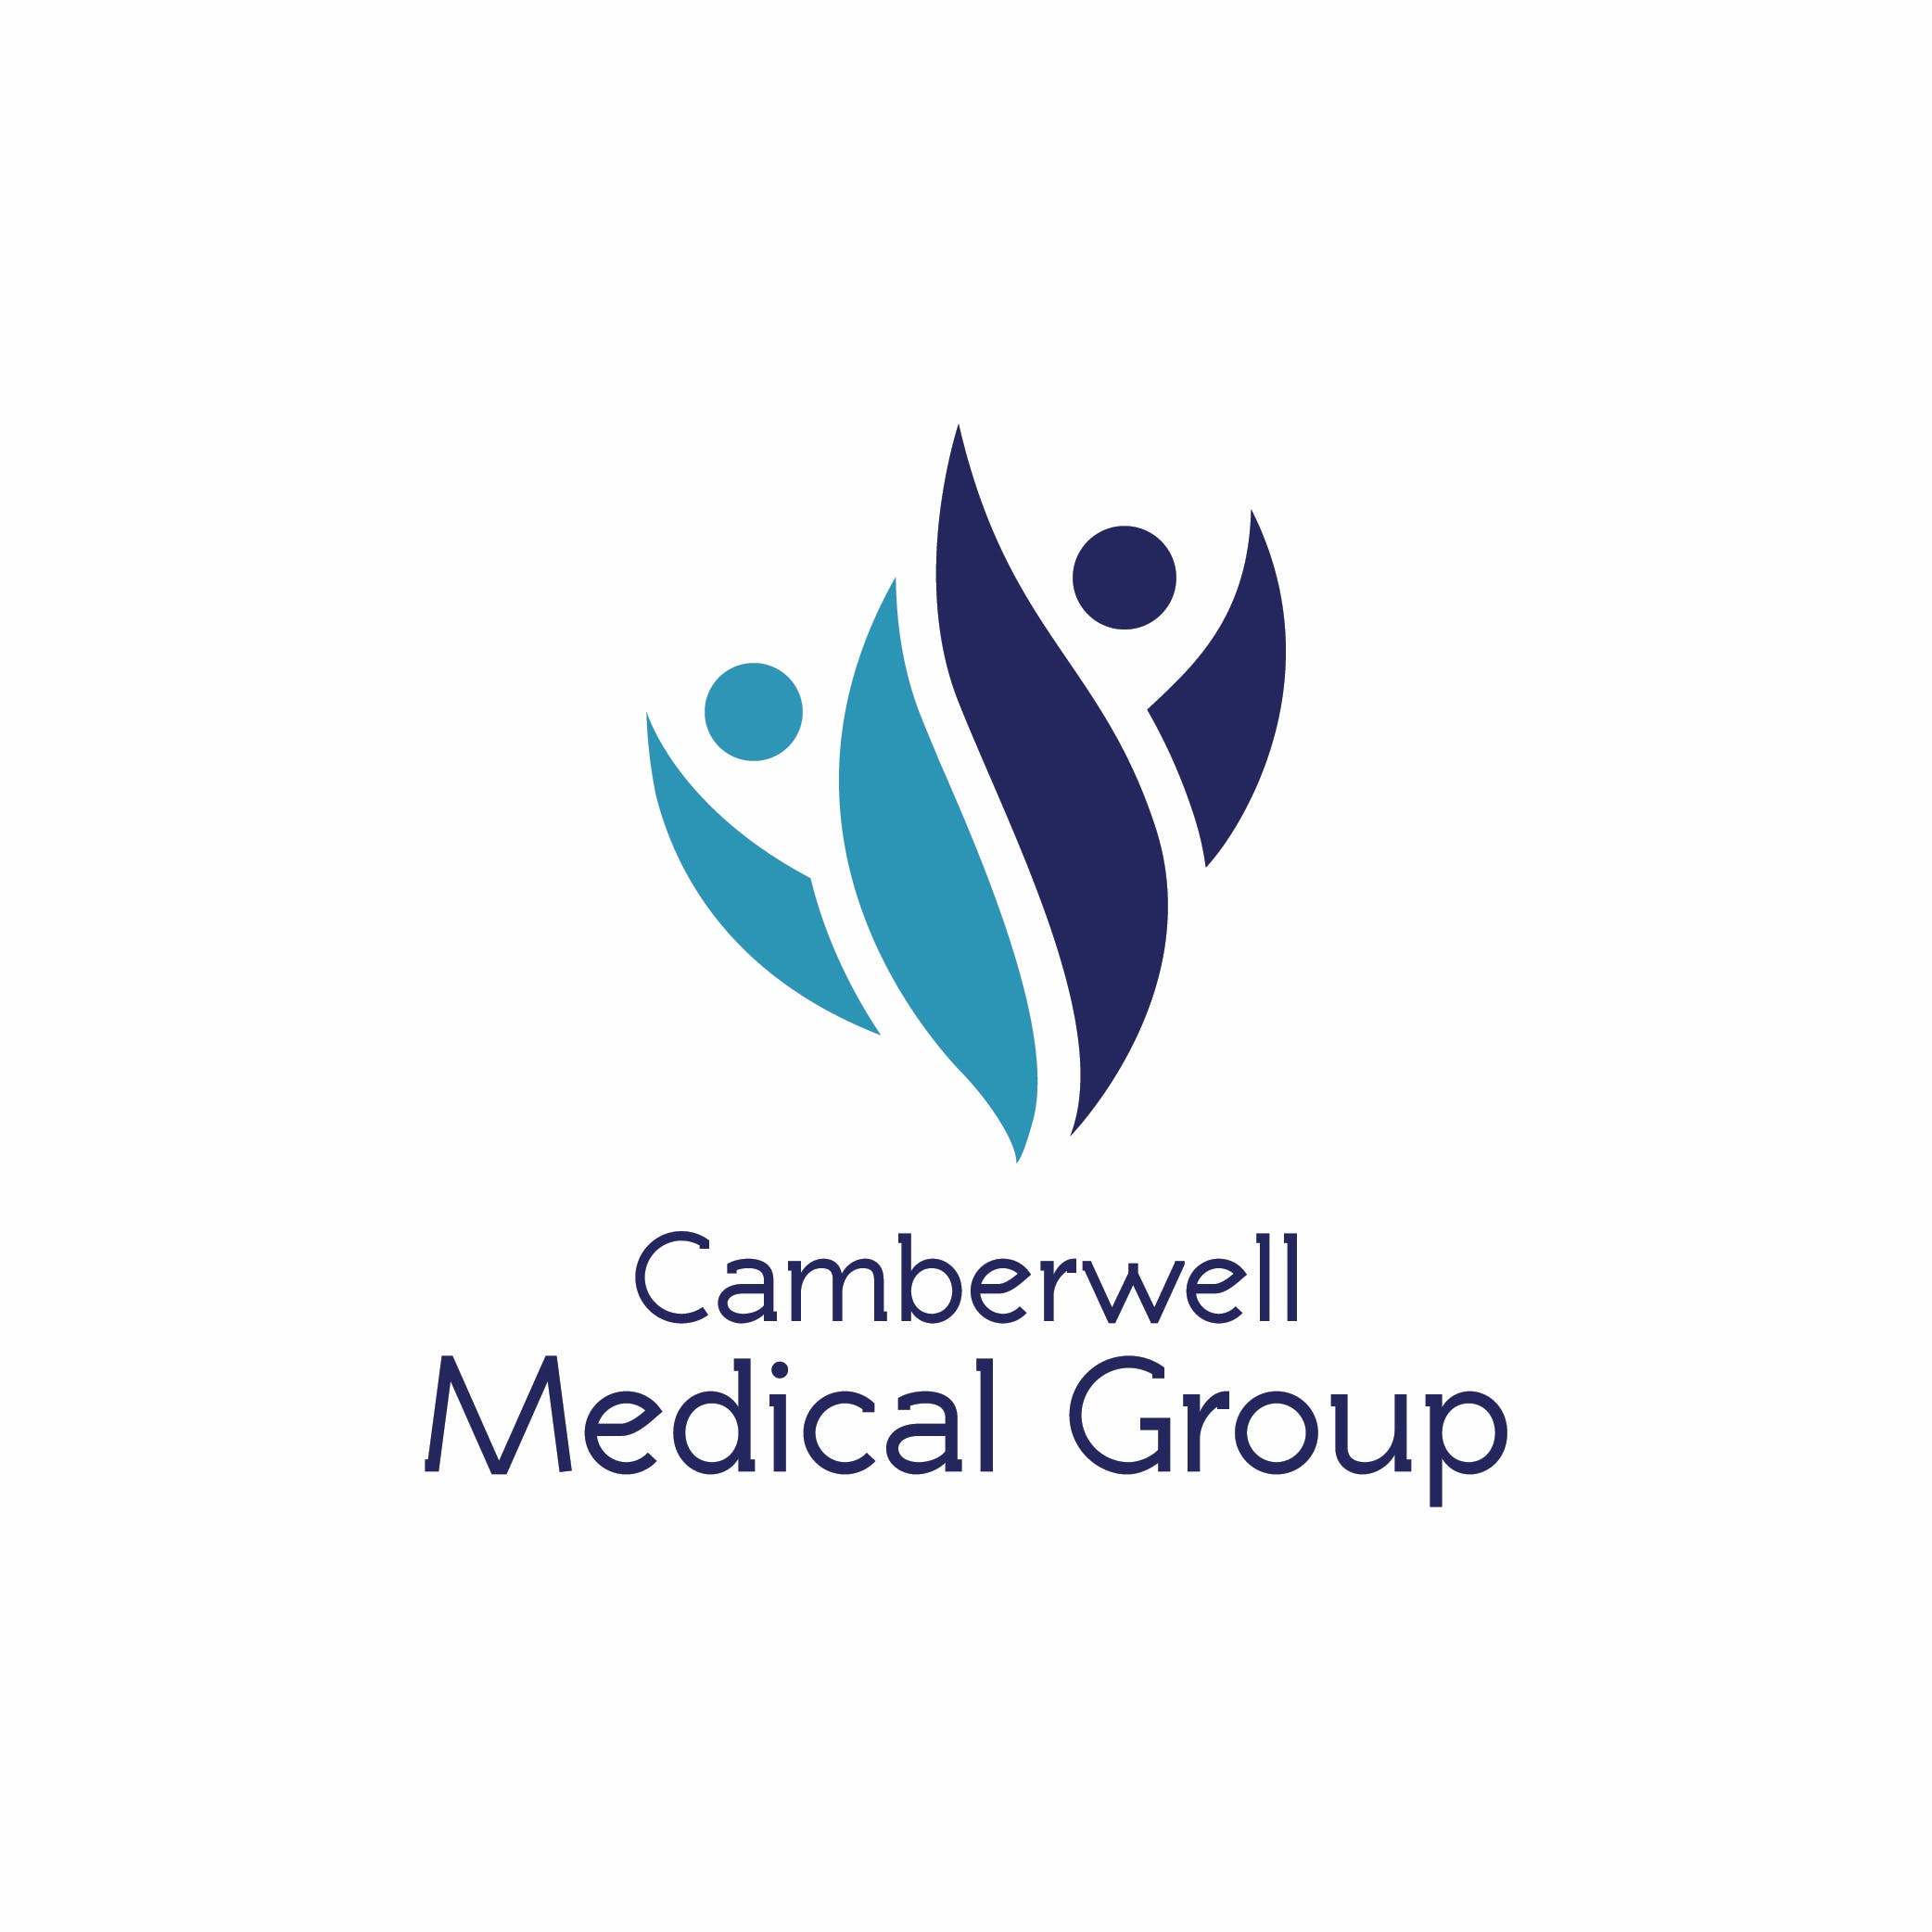 Camberwell Medical Group Logo